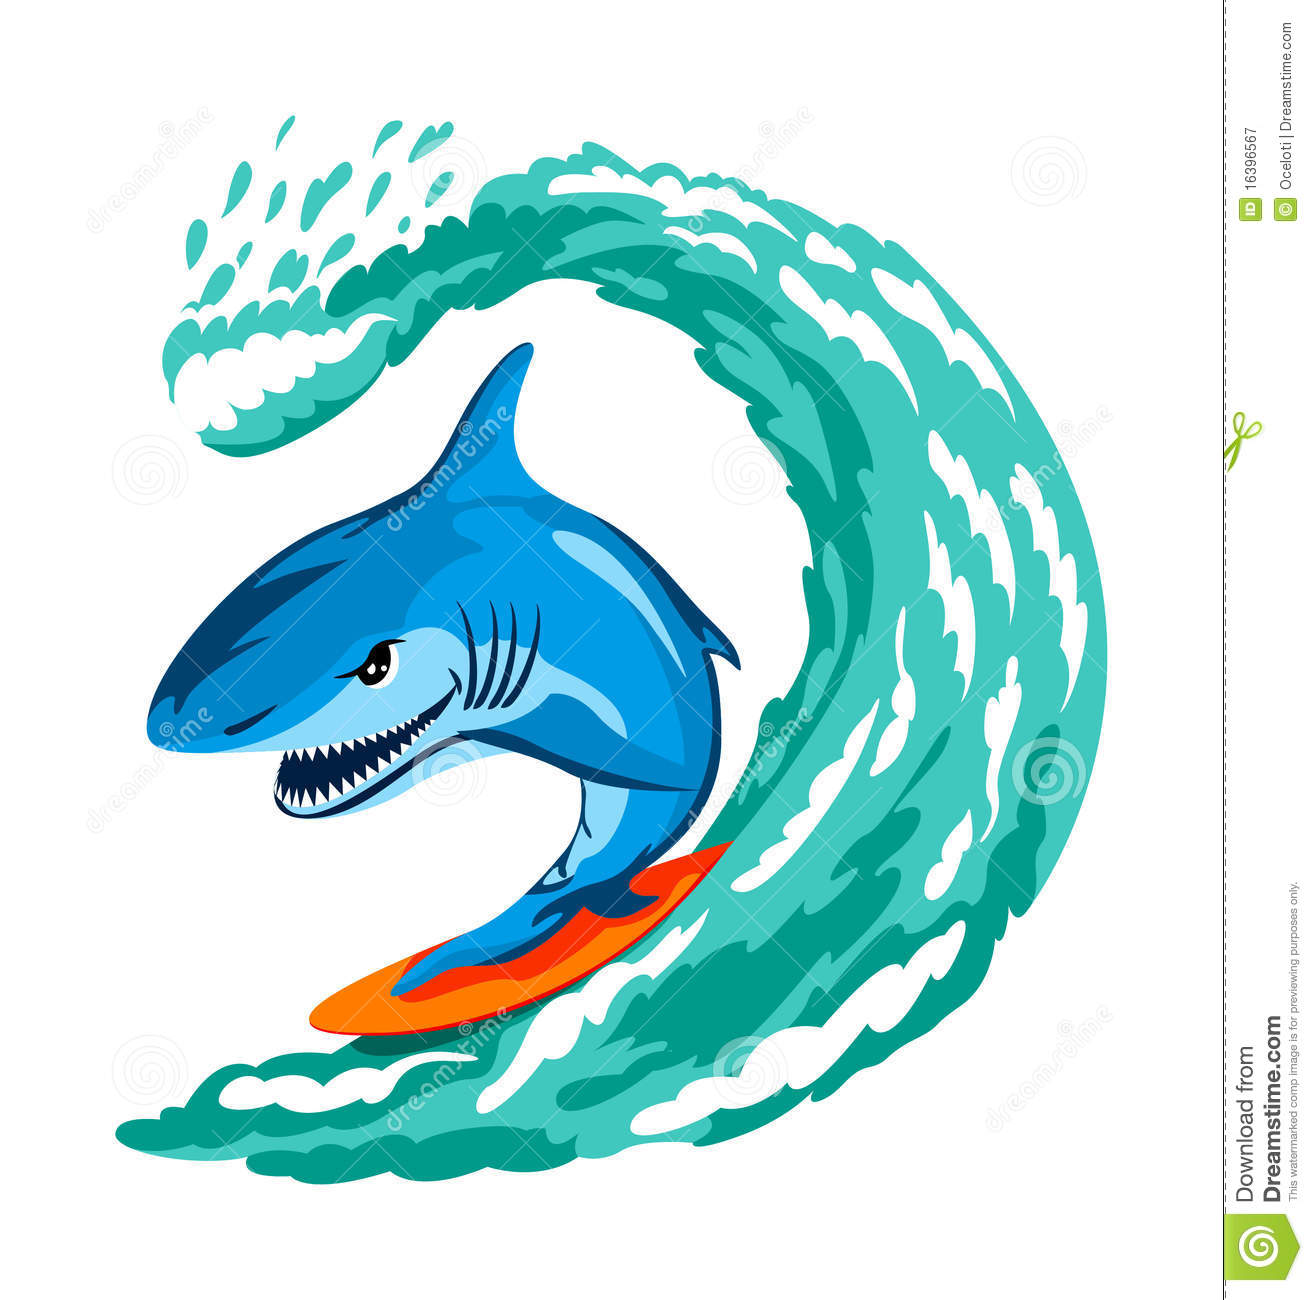 Surfing Shark Royalty Free Stock Photography Image 16396567